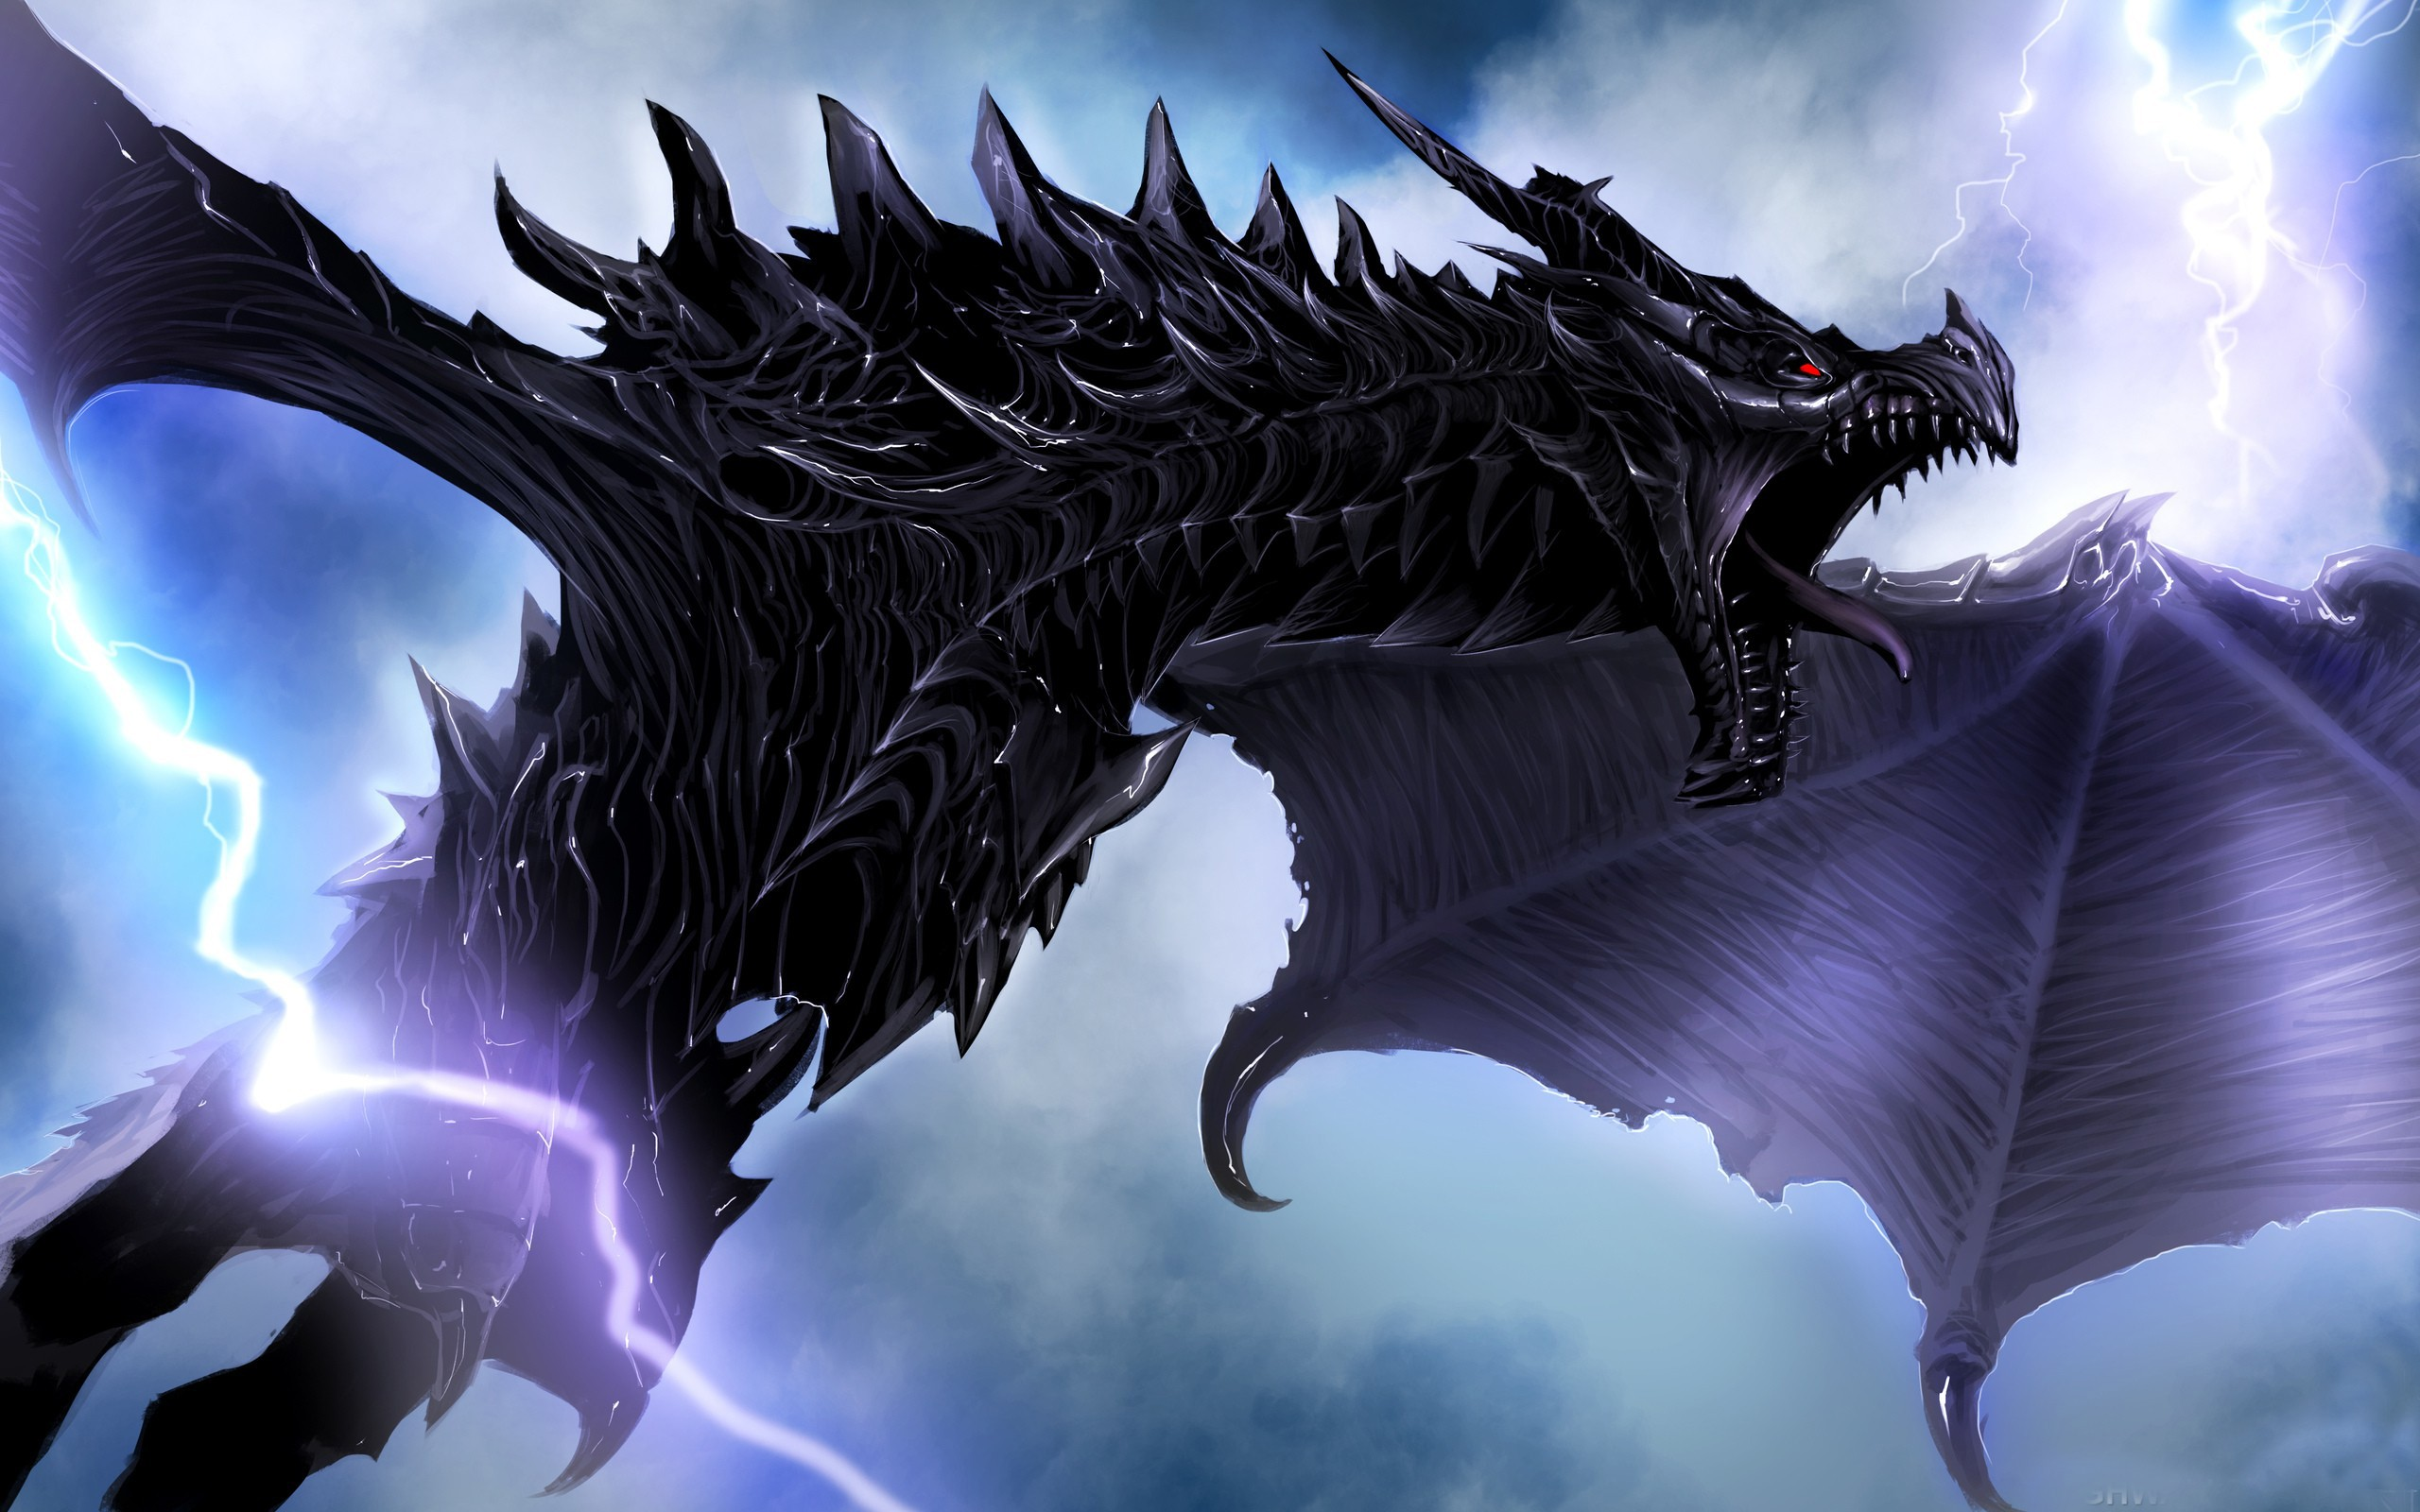 Gallery For gt Lightning Dragon Wallpapers 2560x1600